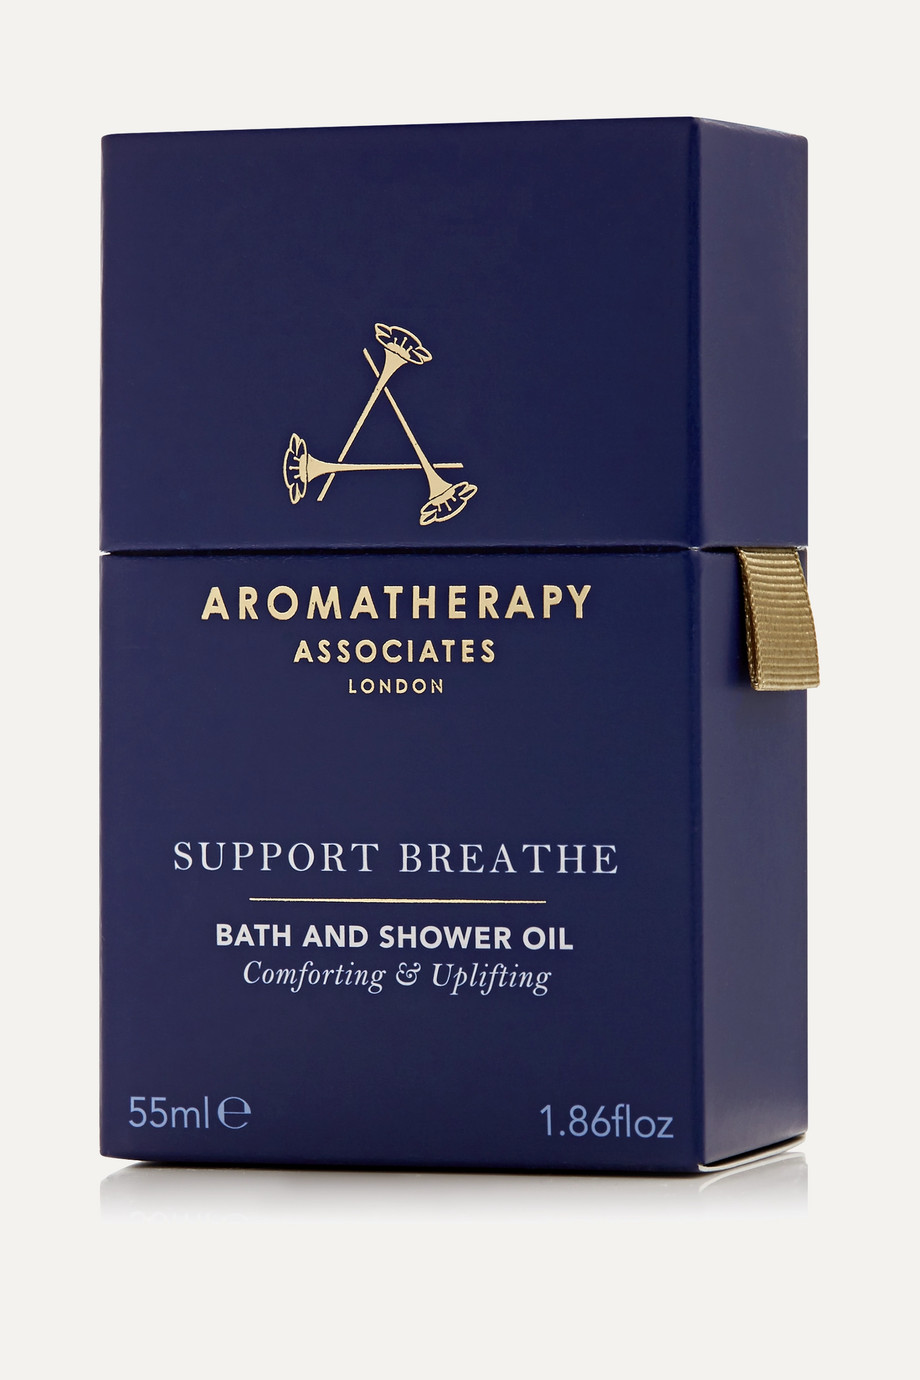 Aromatherapy Associates Support Breathe Bath and Shower Oil, 55ml